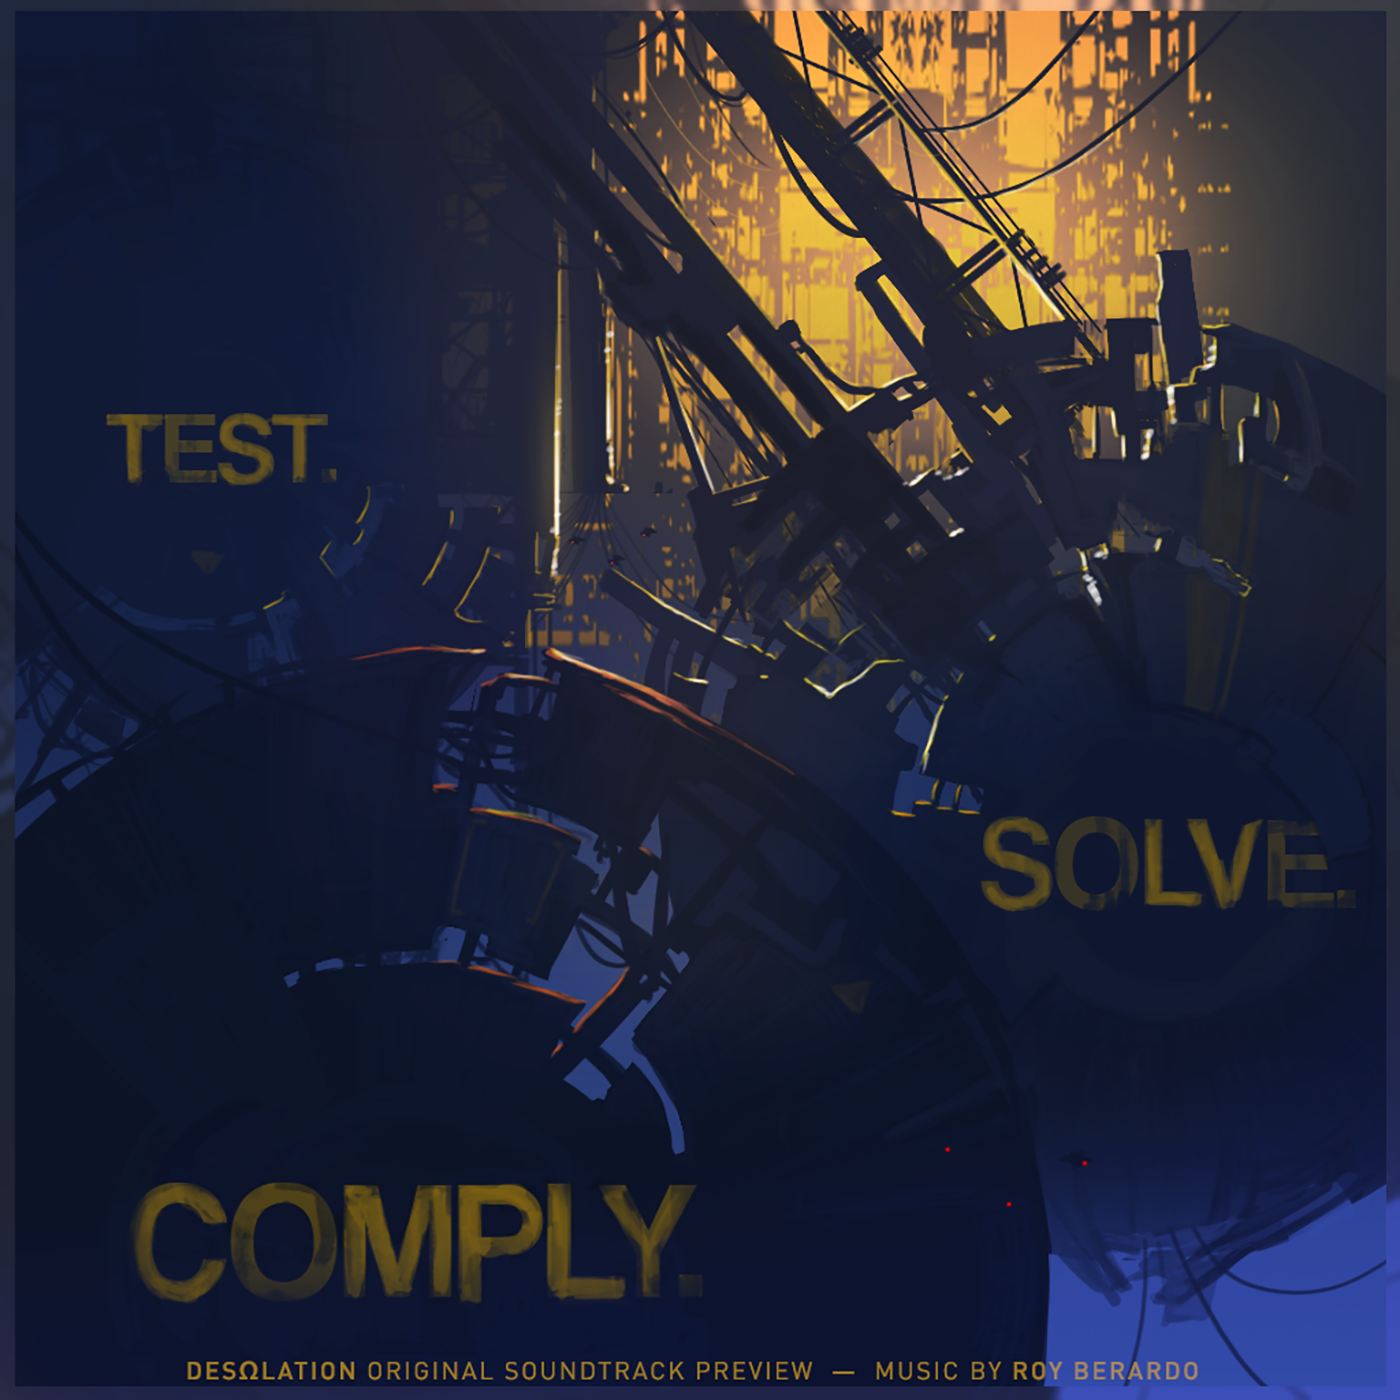 Test Solve Comply Artwork